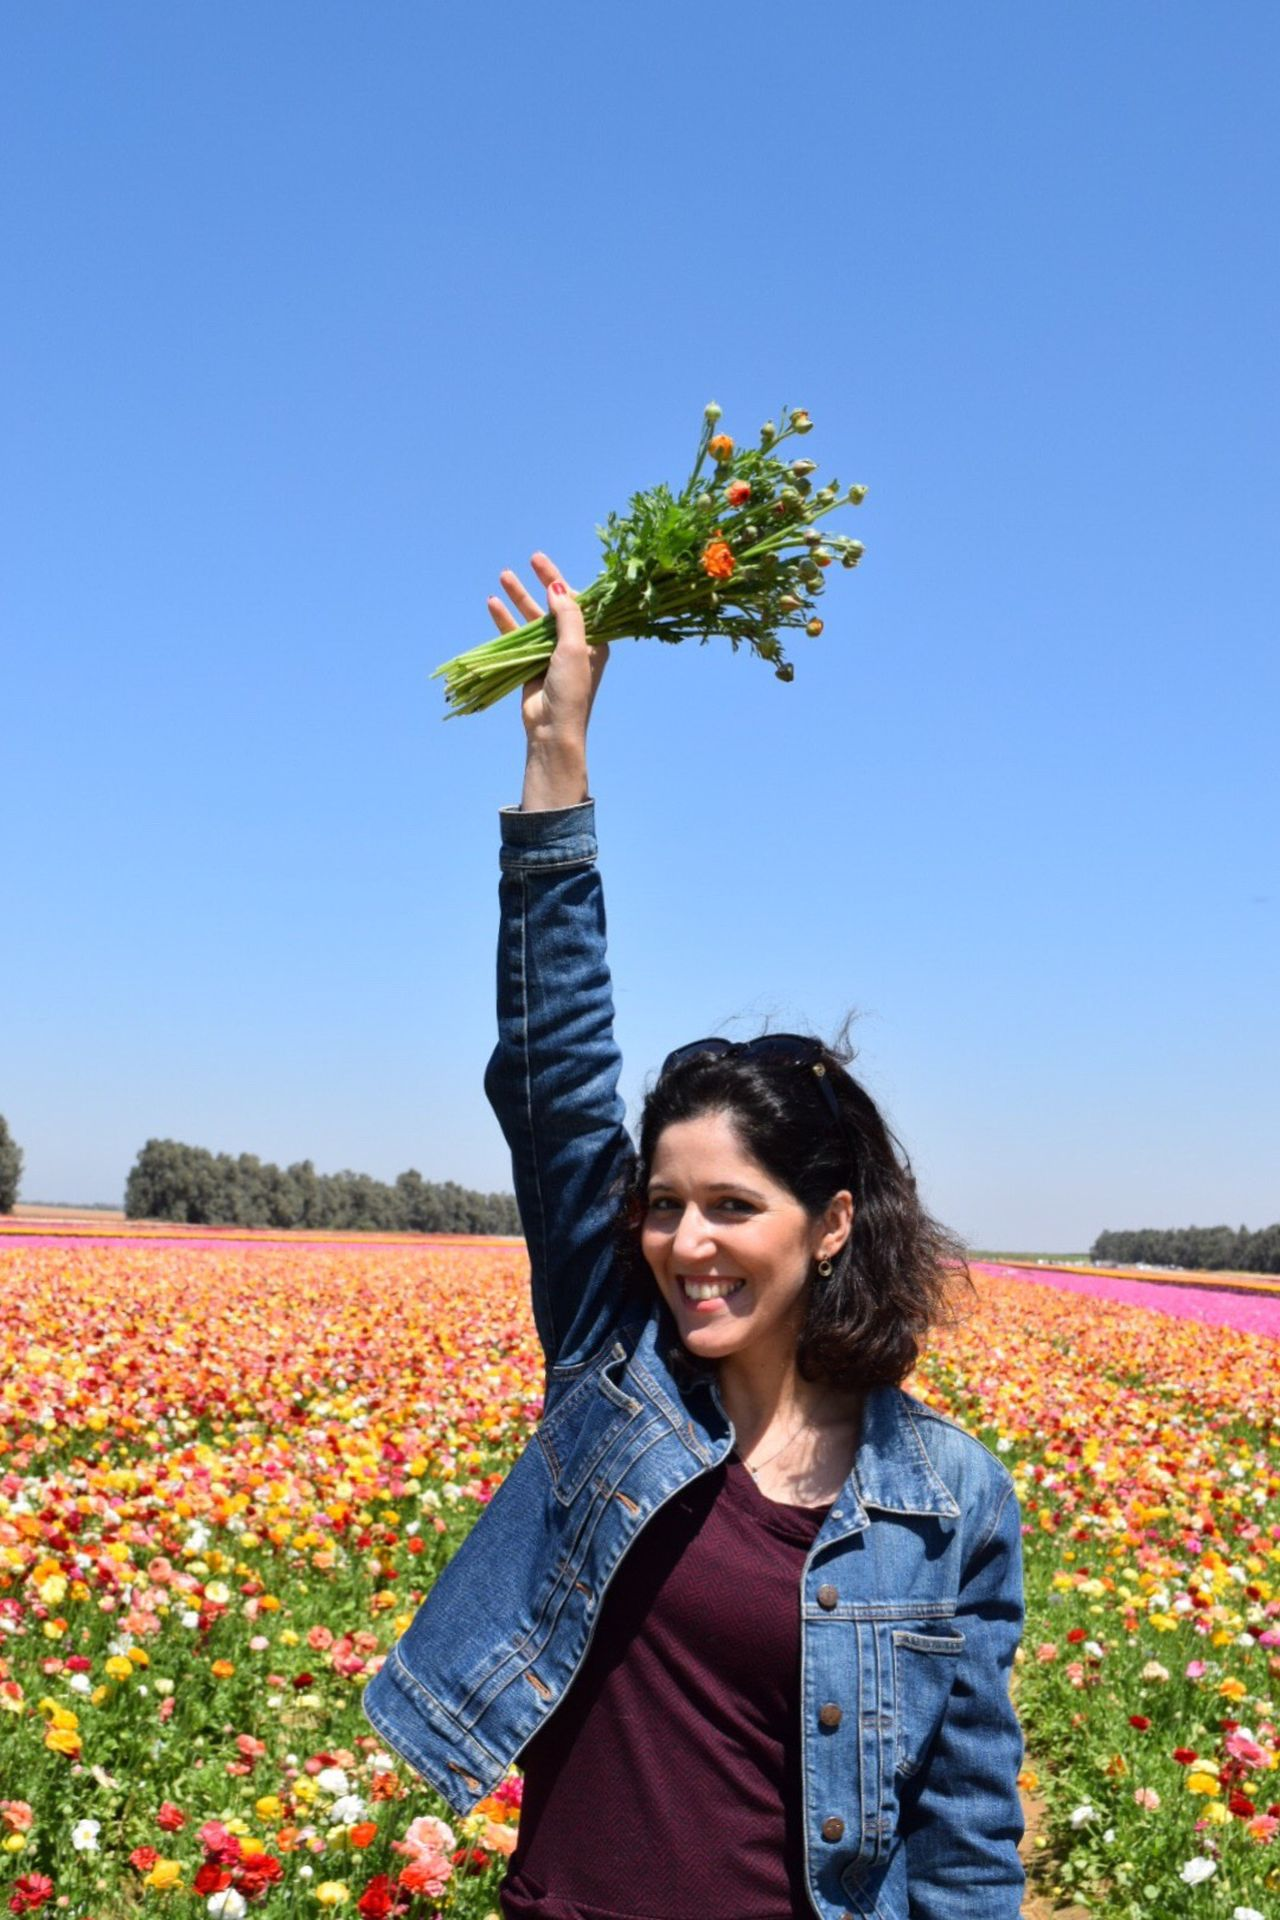 Flower Smiling One Person Happiness Mid Adult Women Nature Growth Cheerful Mid Adult Outdoors Freshness Real People Young Women Leisure Activity Agriculture Women Lifestyles Blue Clear Sky Plant Spring Summer Vertical Colorful Smile Live For The Story